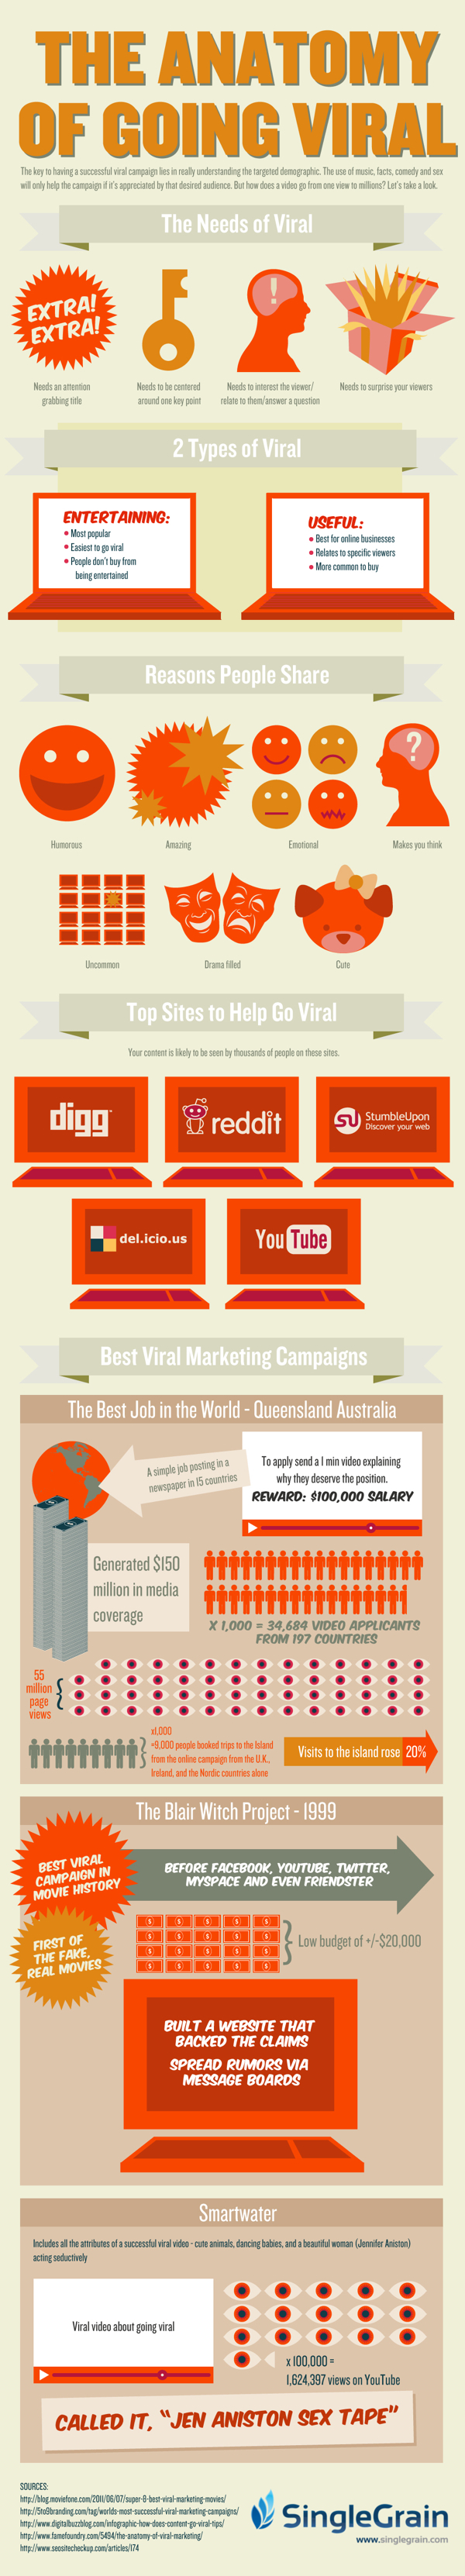 goingviral singlegrain 030112finalsmall1 The Anatomy of Going Viral [Infographic]